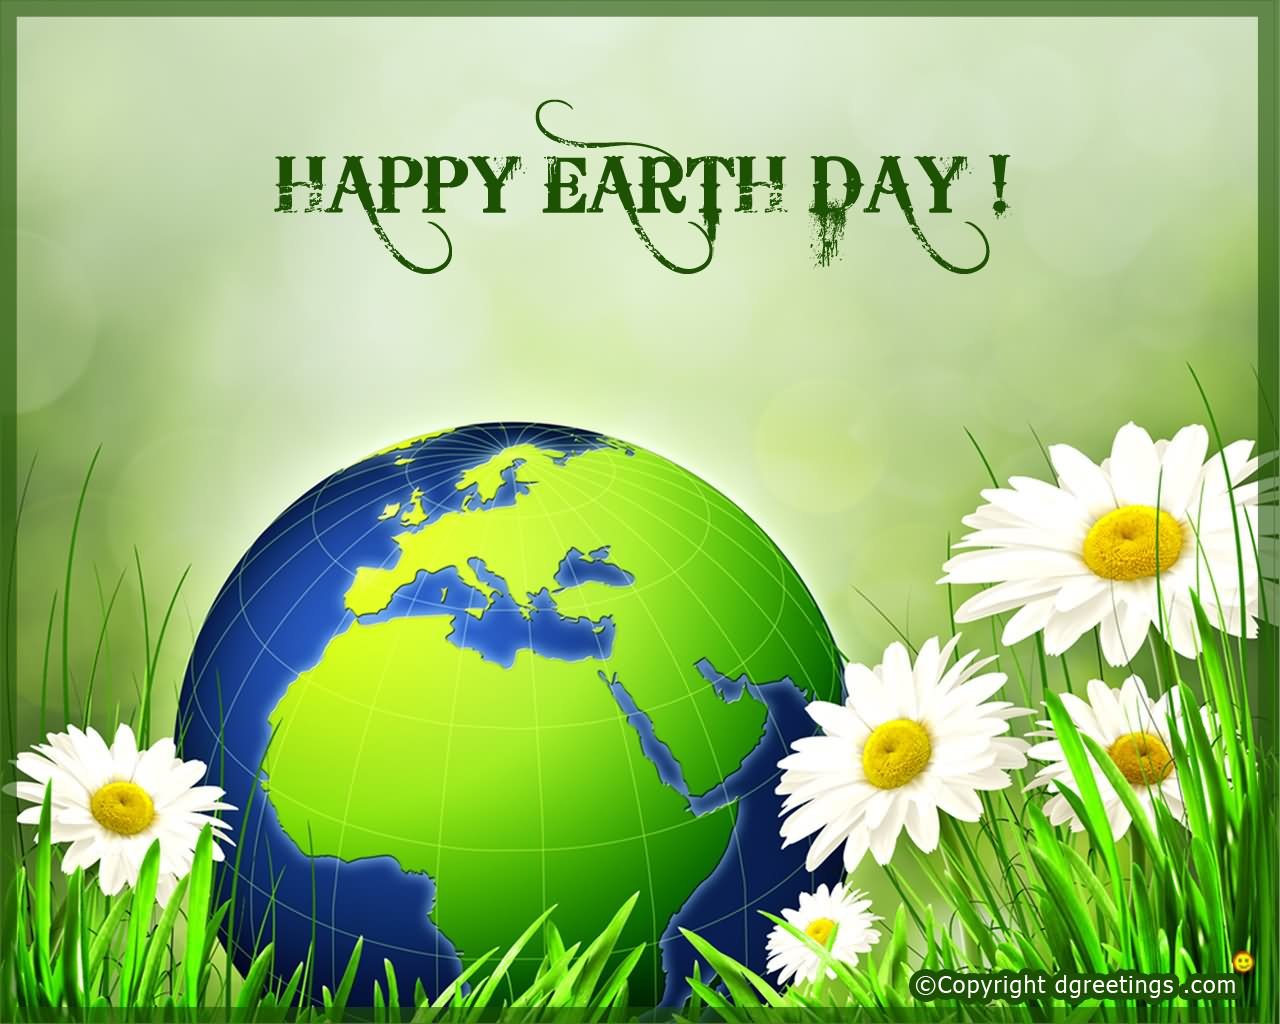 Happy-Earth-Day-Greetings-Wallpaper